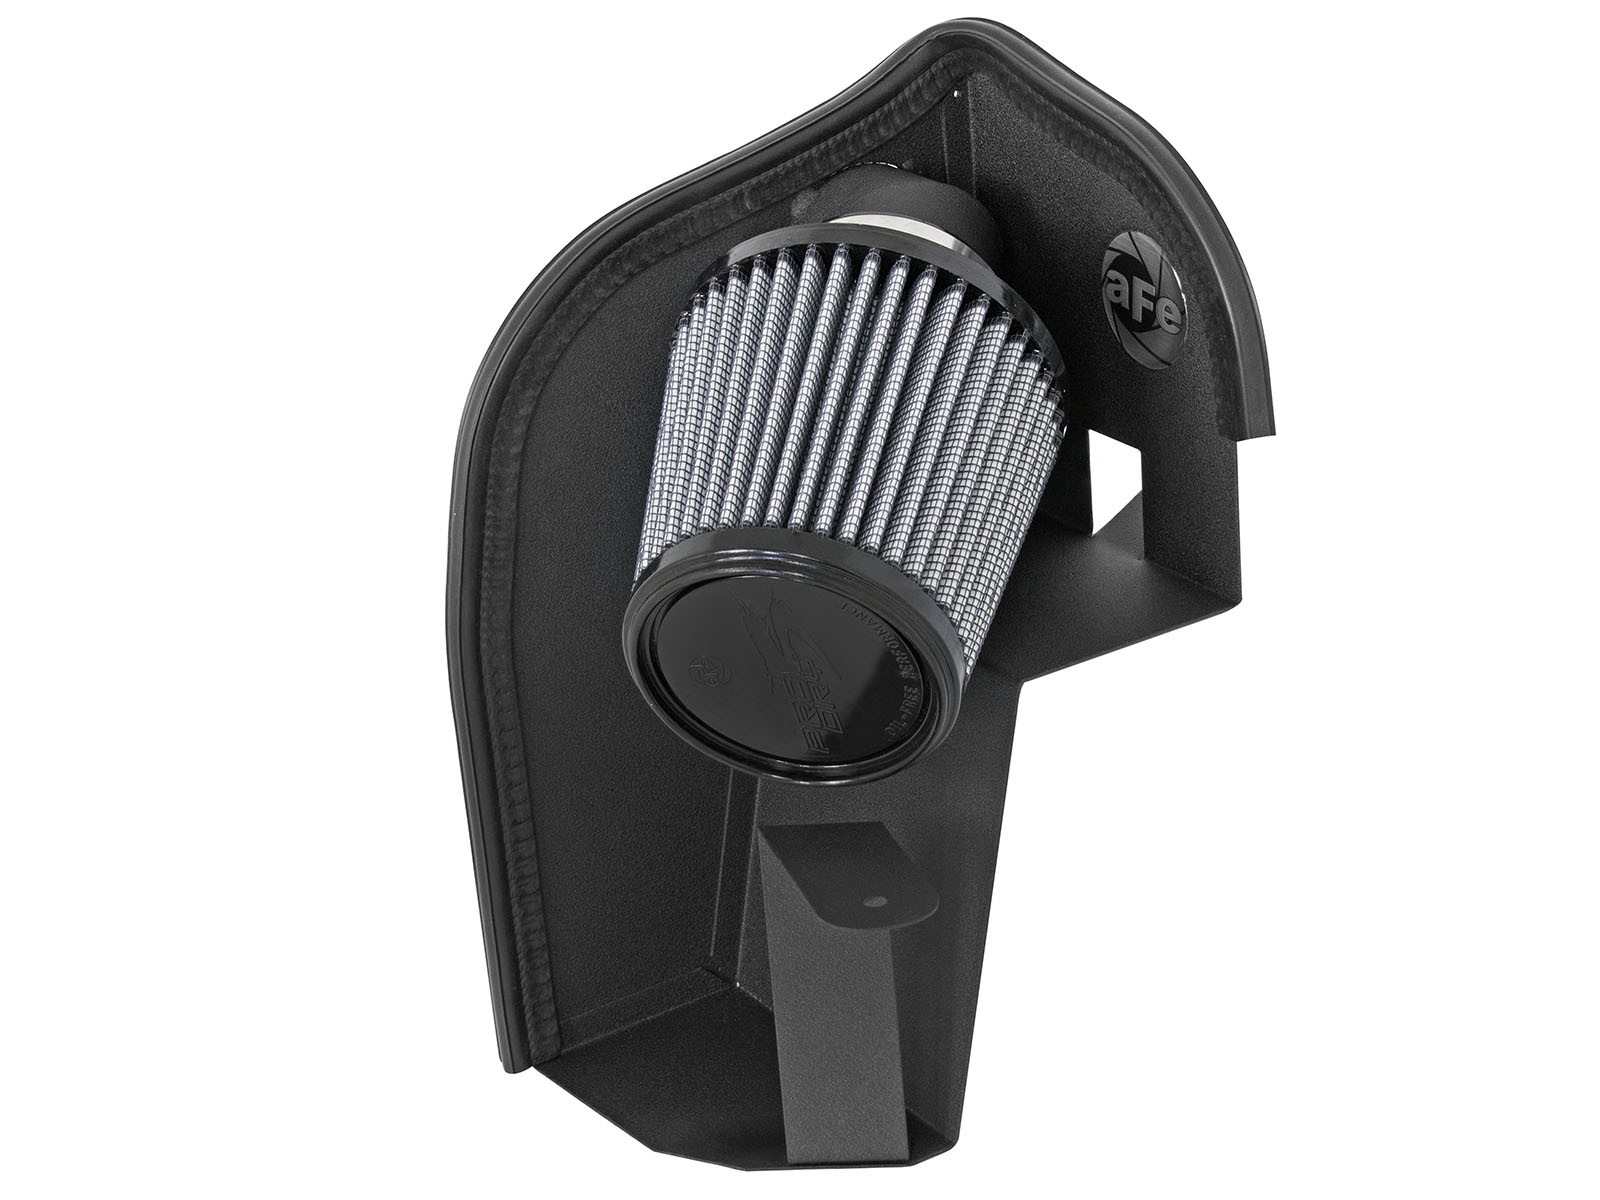 aFe POWER 51-10561 Magnum FORCE Stage-1 Pro DRY S Cold Air Intake System